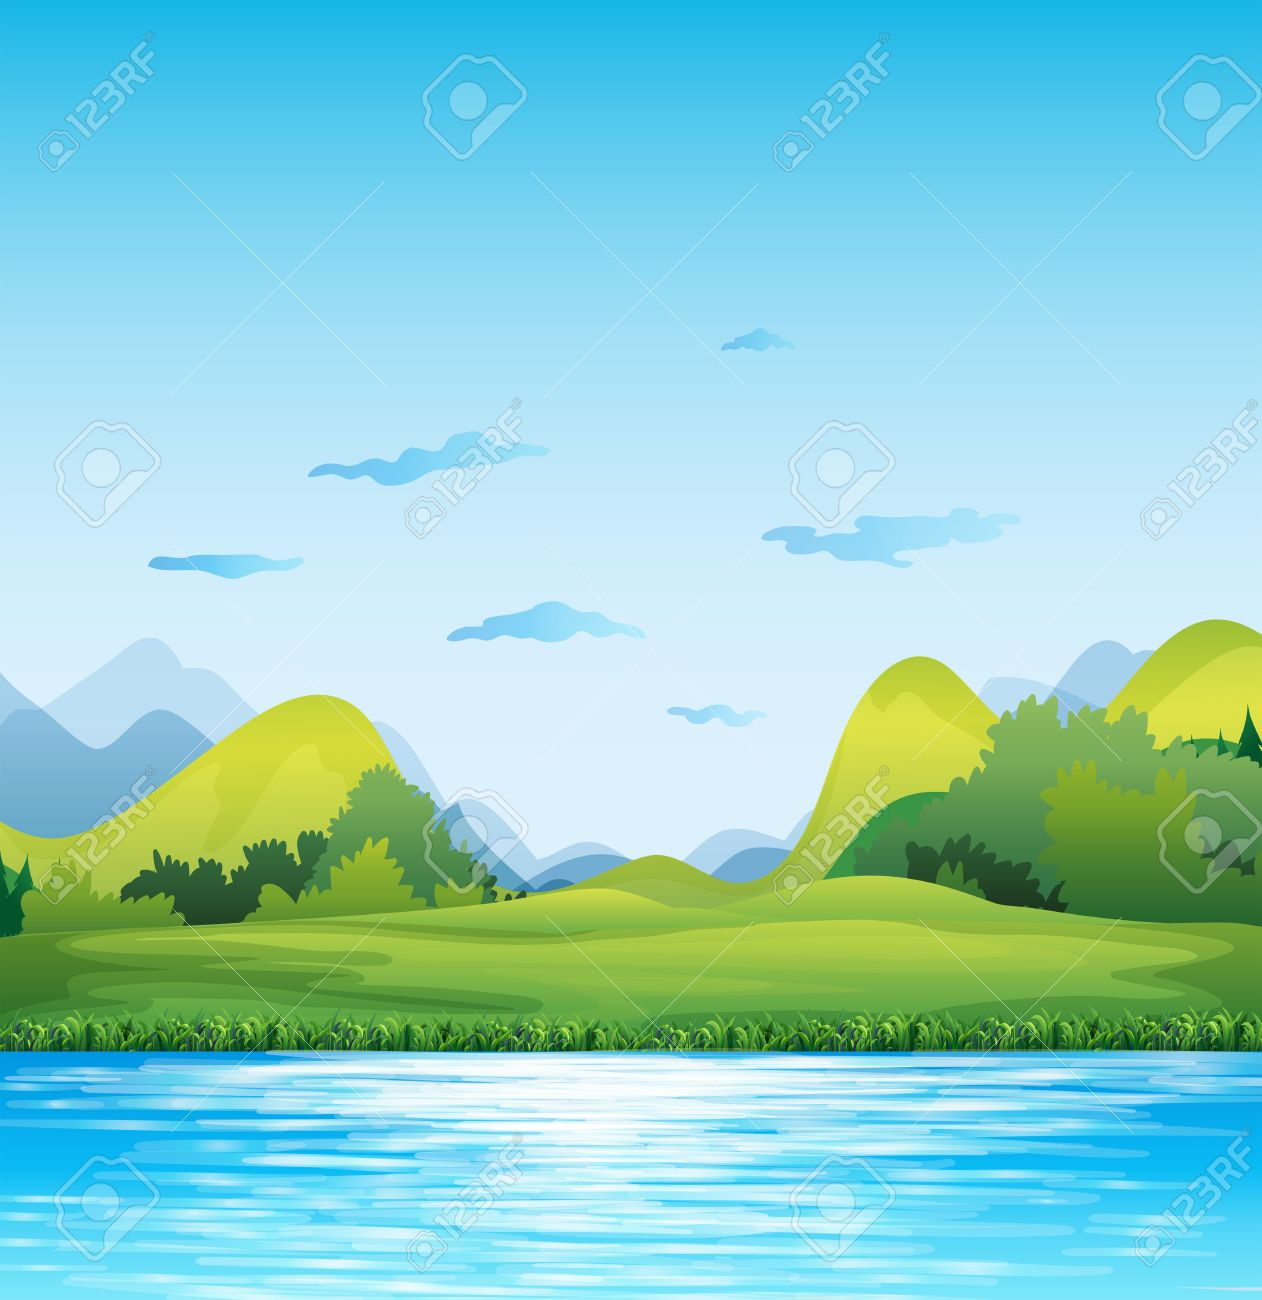 Scene of a green field by the river - 40068952